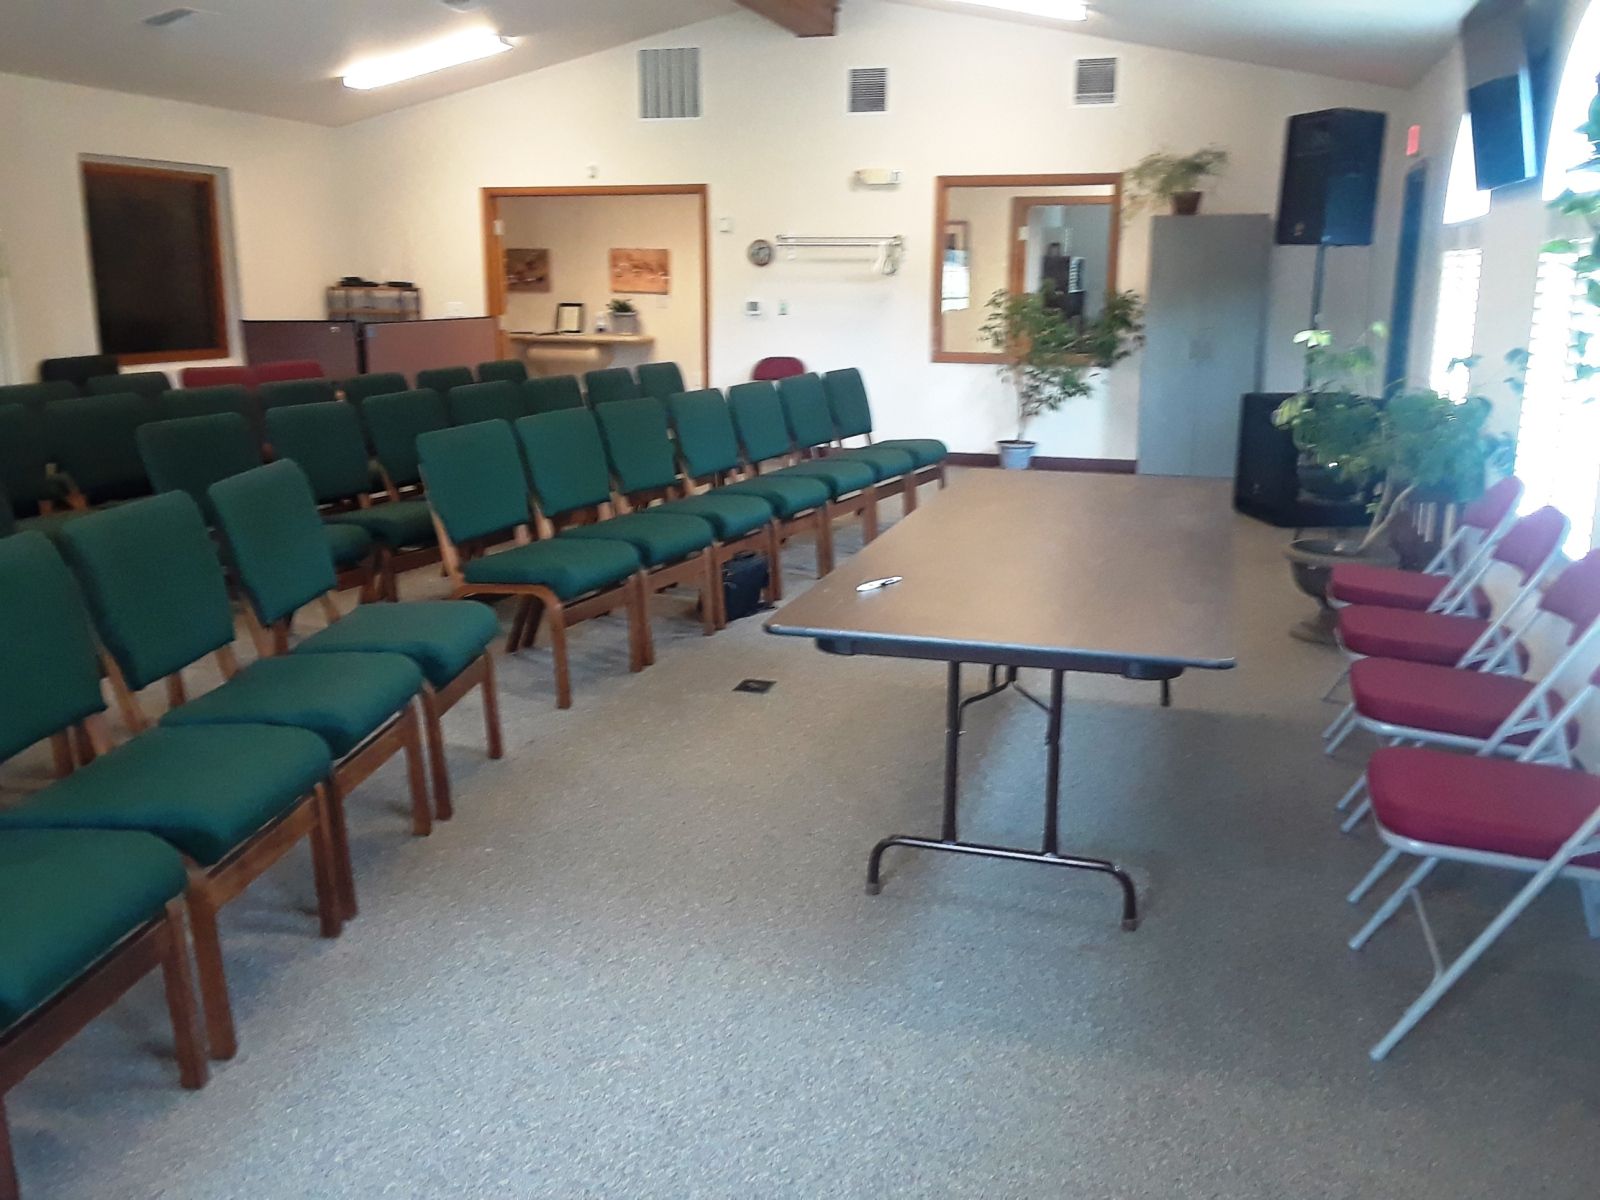 Set up in main room pointing to main entrance hallway